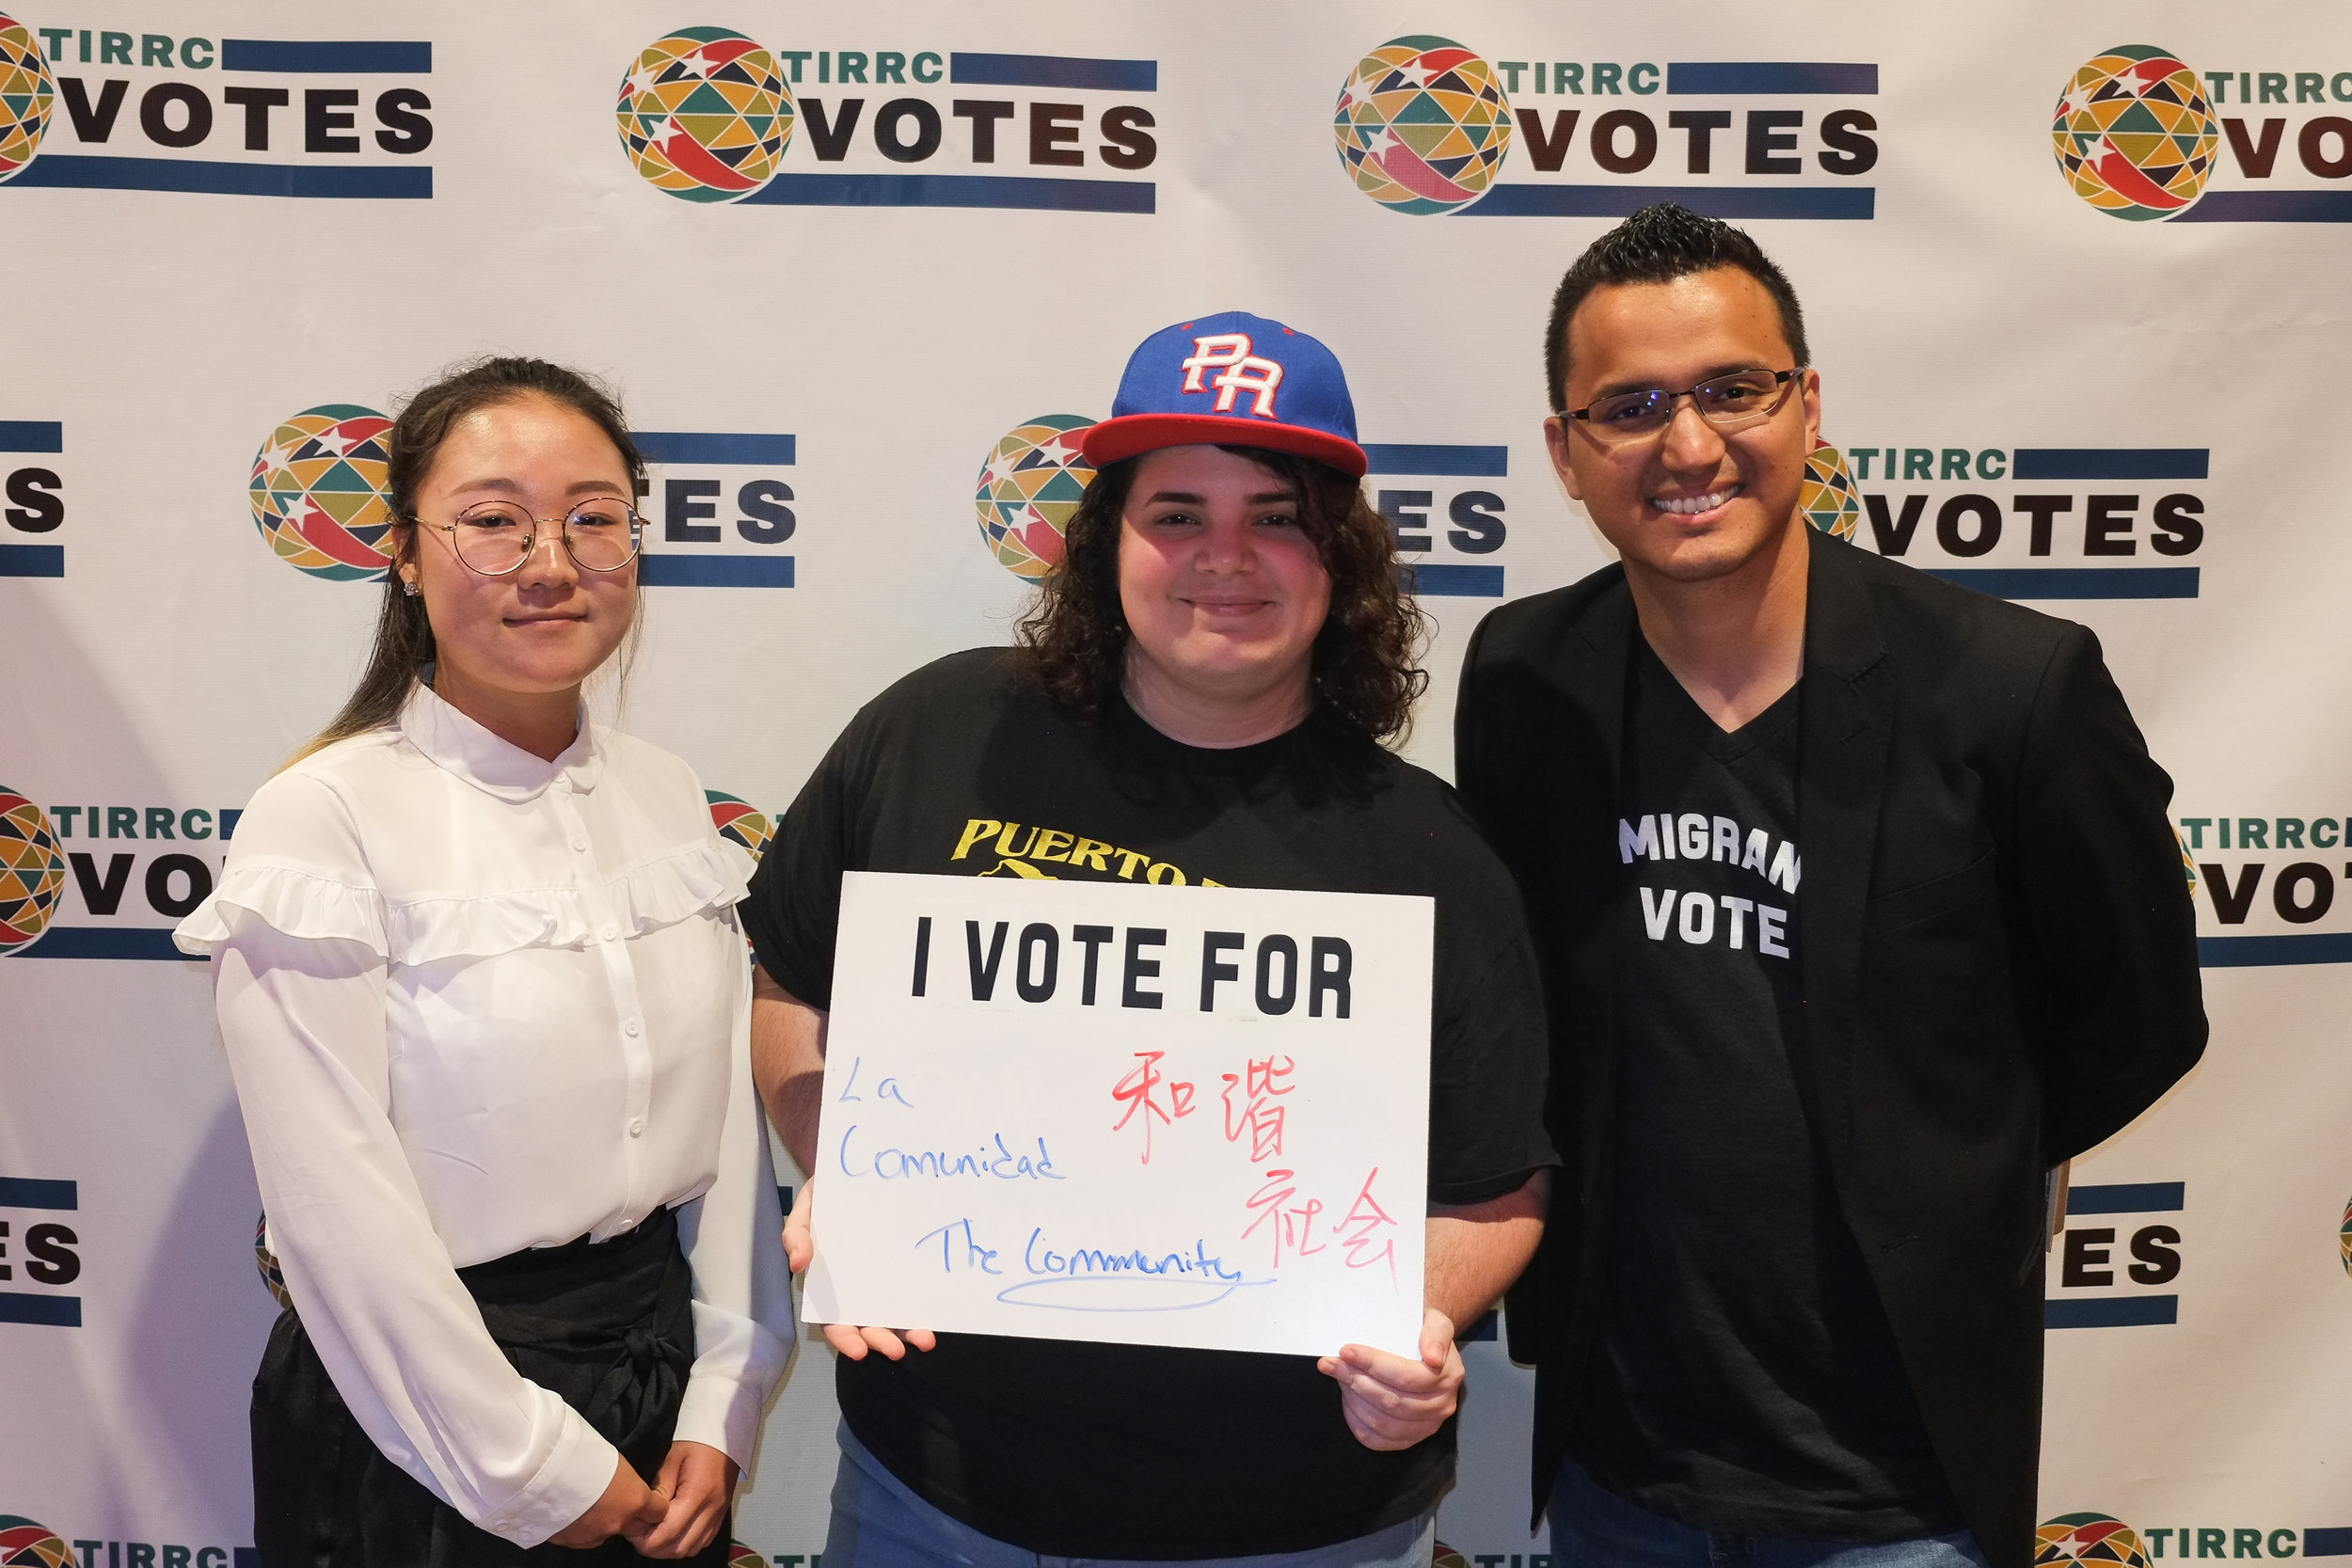 TIRRCVotes-PhotoBooth-52.jpg